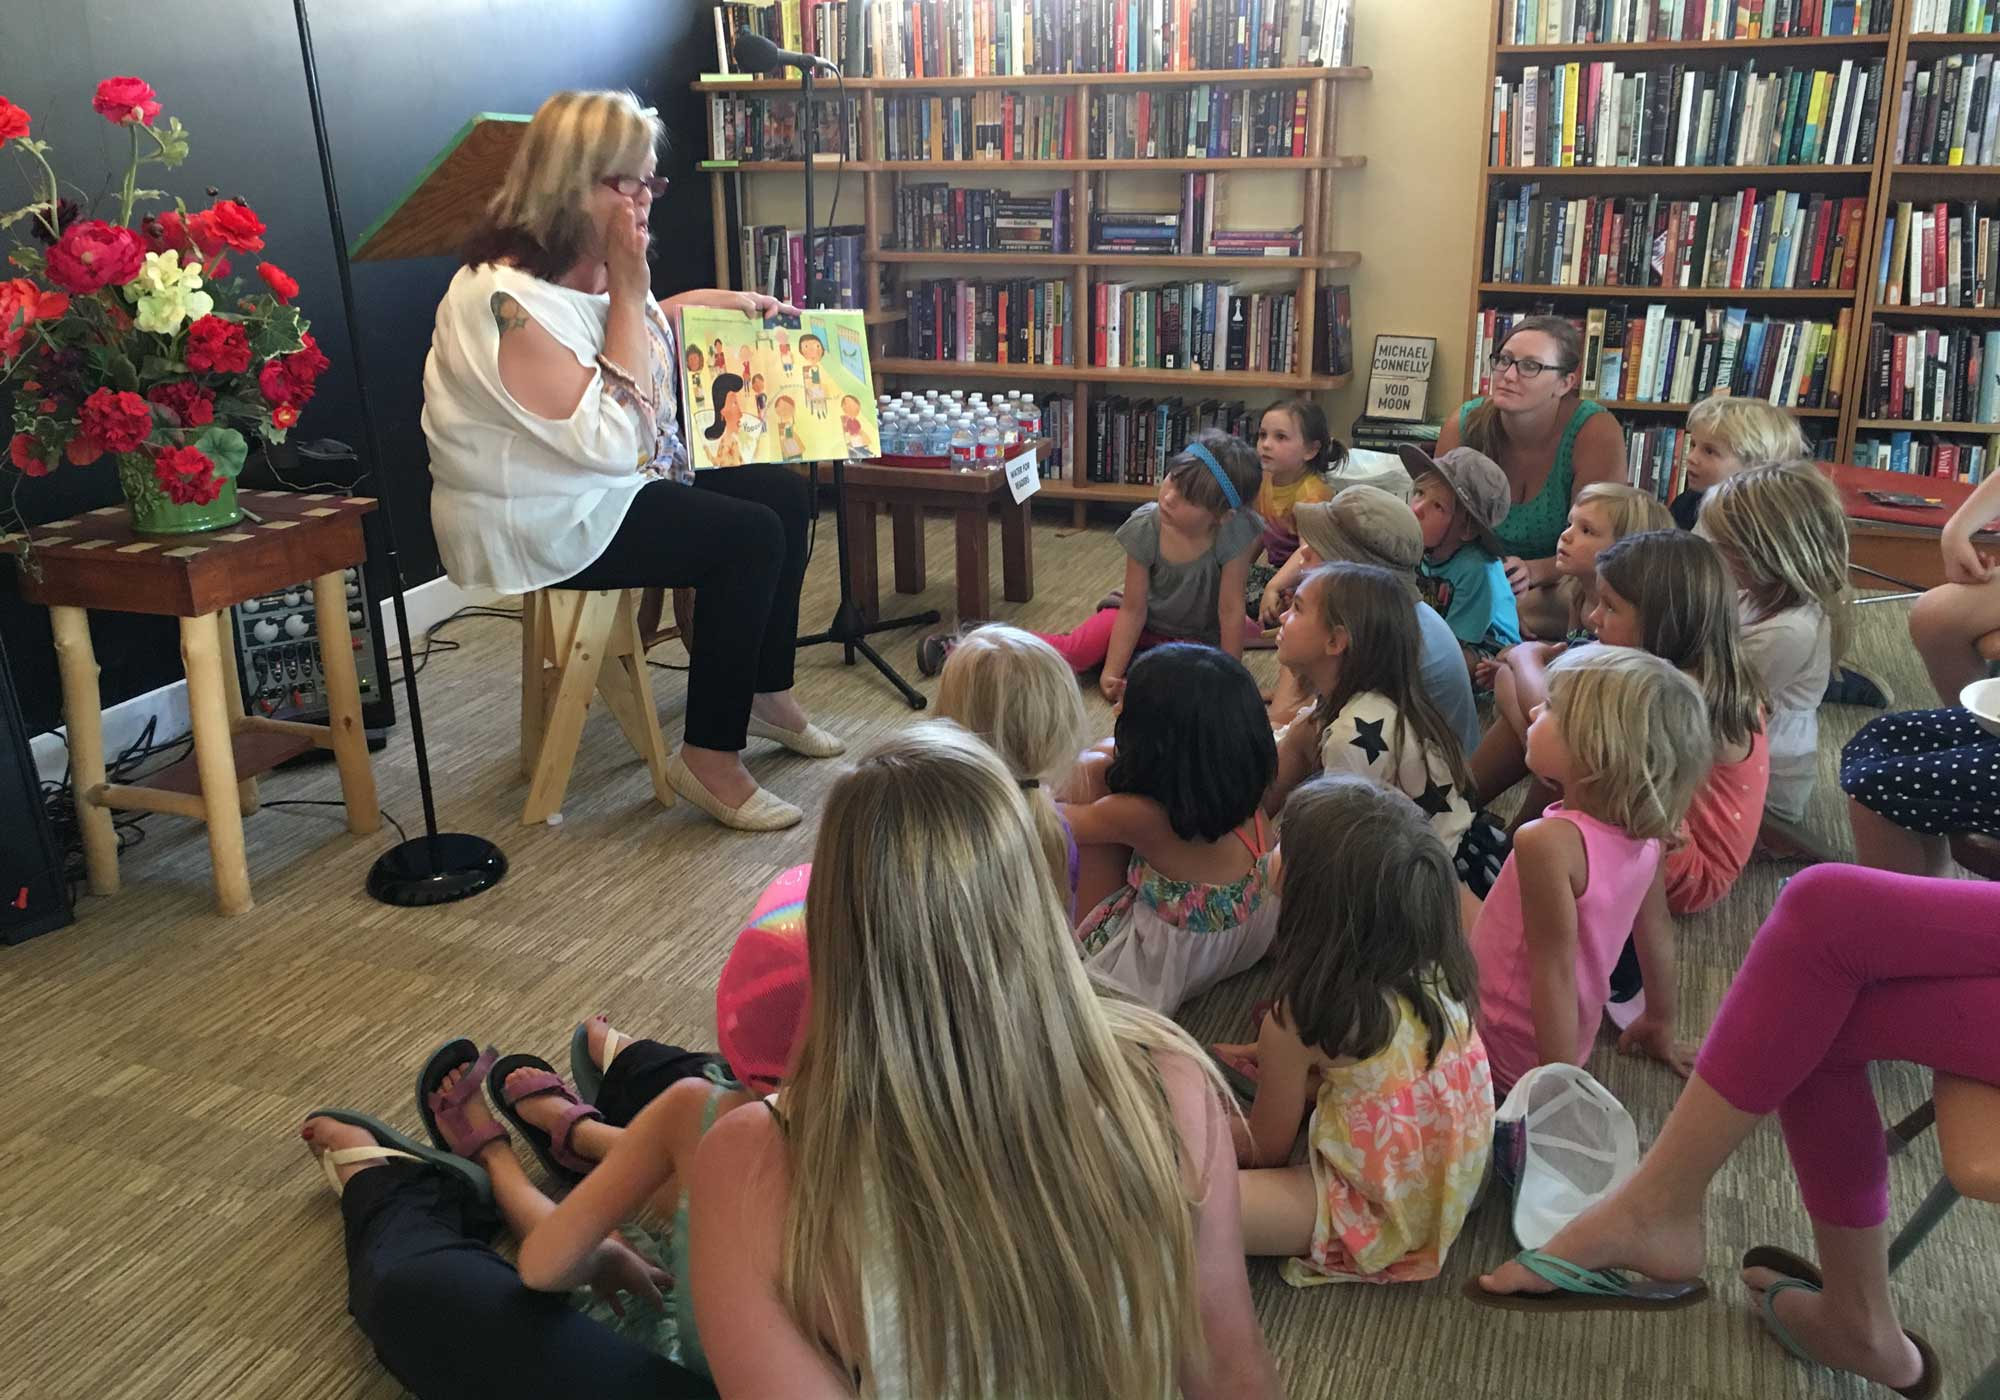 Children's book reading at SOMOS in Taos, New Mexico